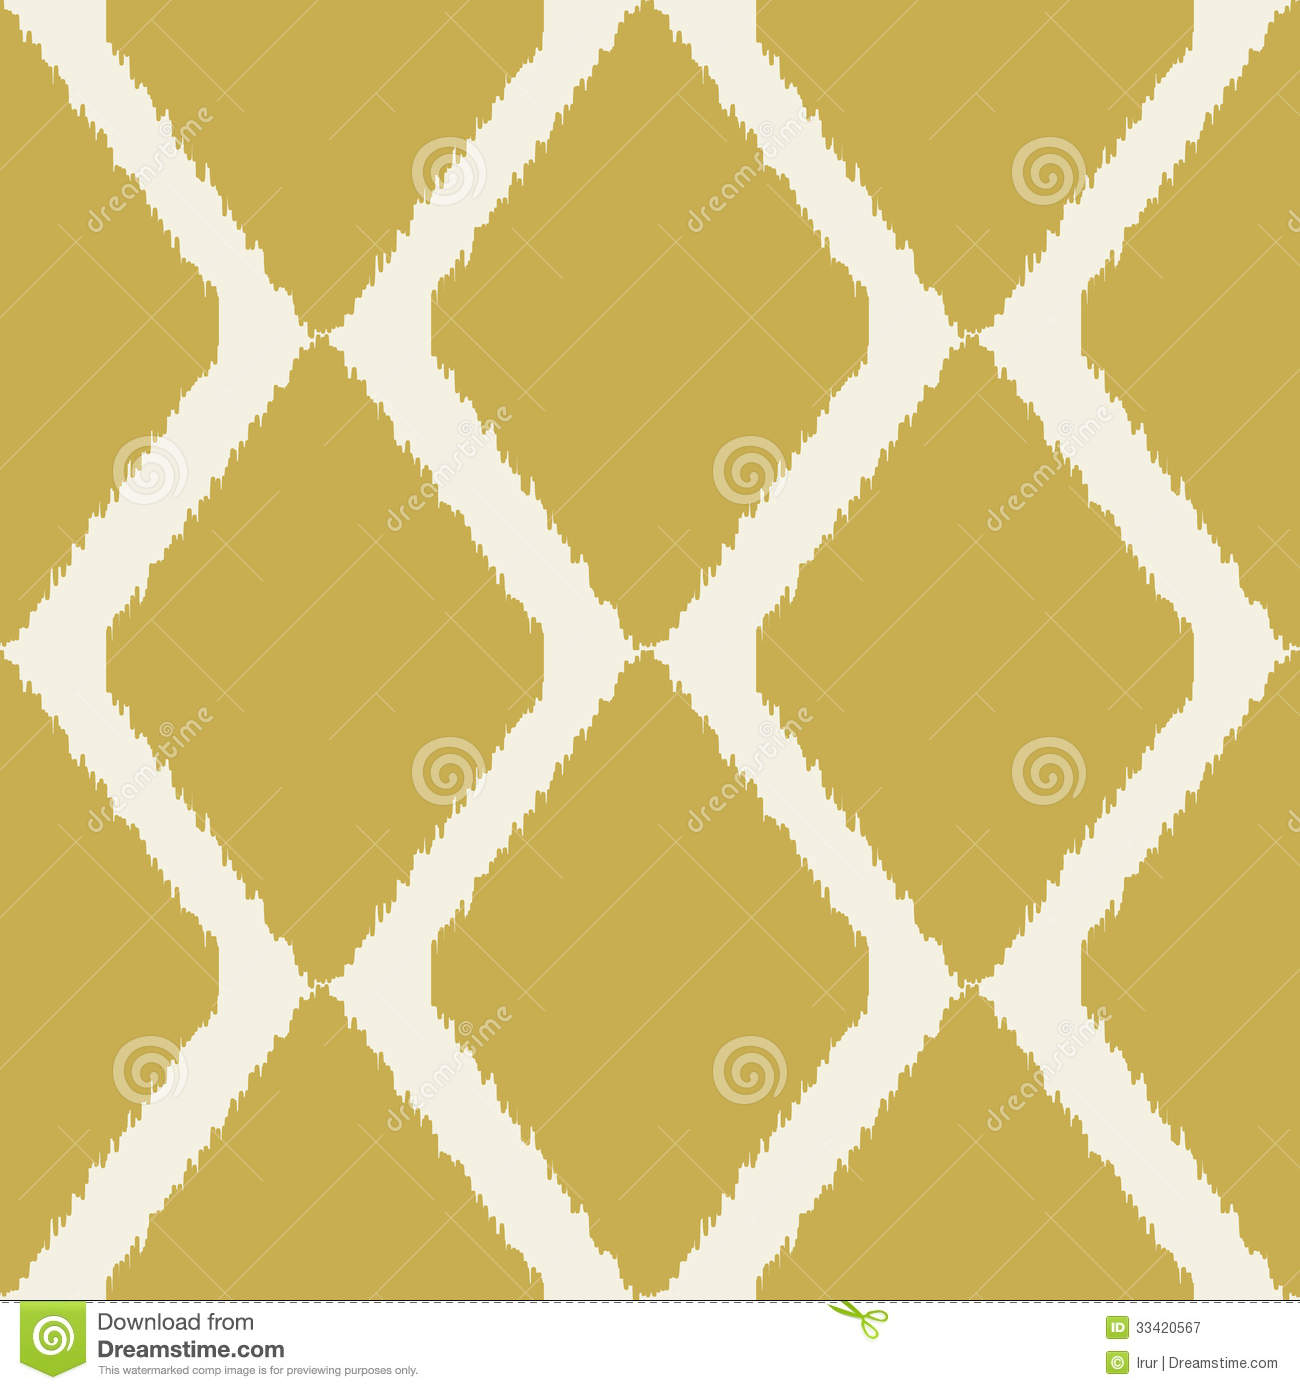 Ikat Seamless Modern Pattern For Home Decor Or Web Royalty Free Stock ...